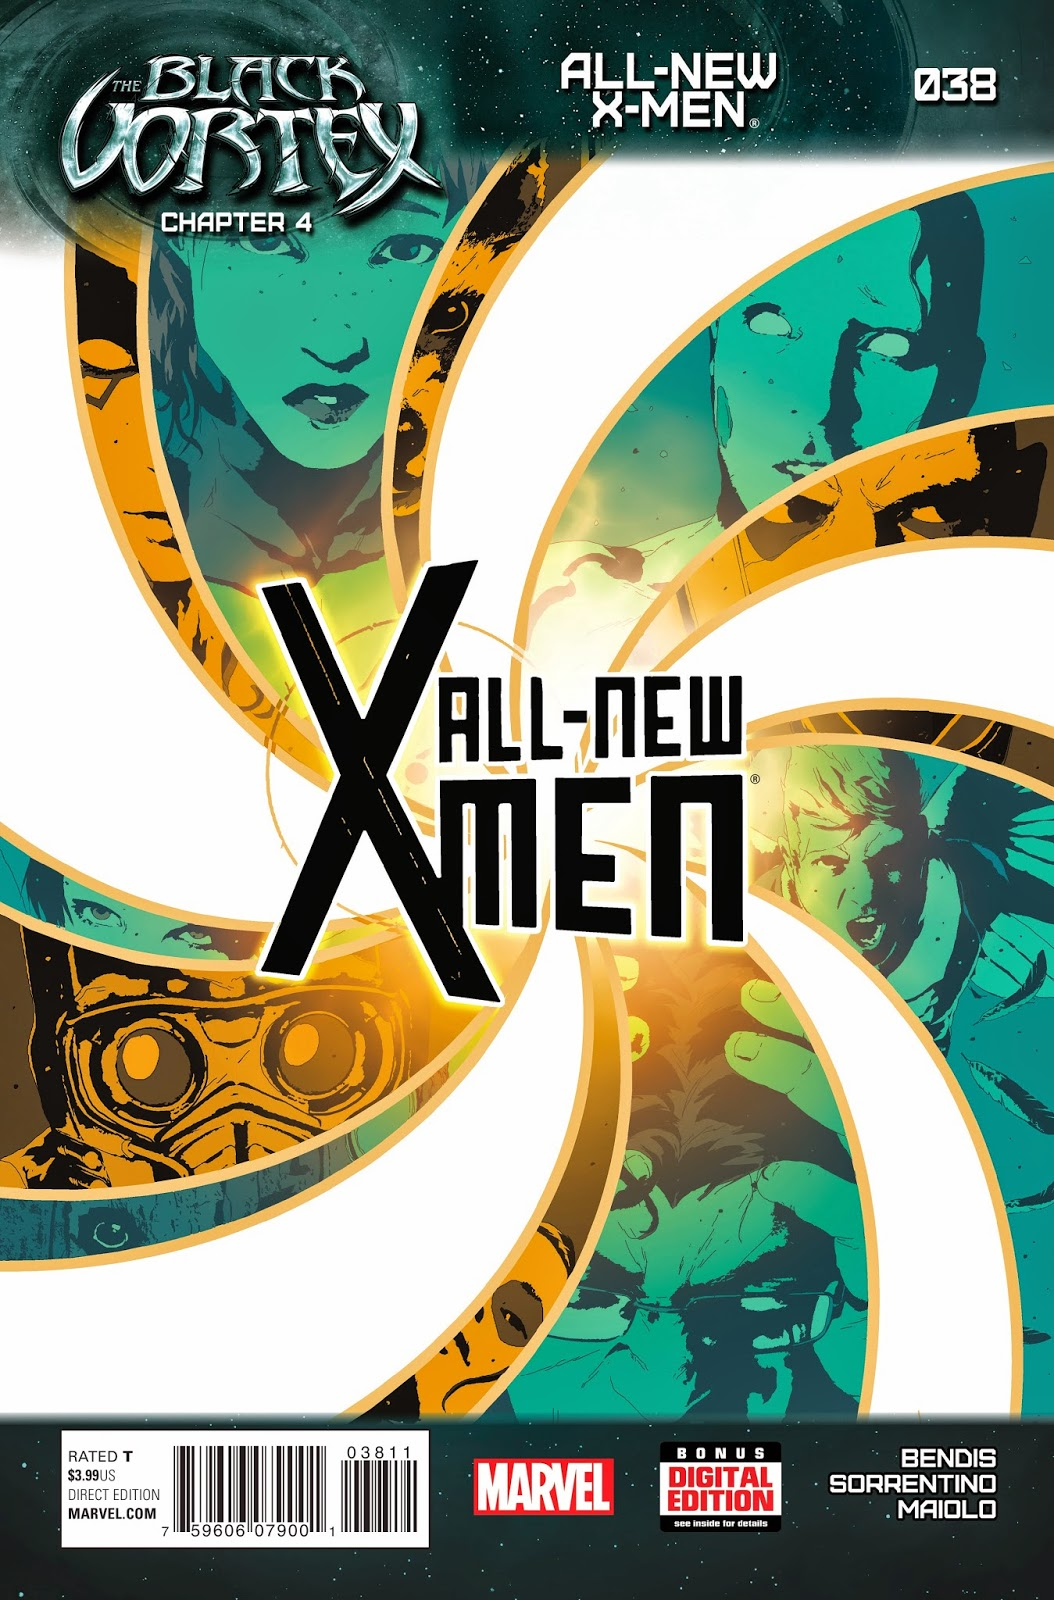 All-New X-Men in The Black Vortex